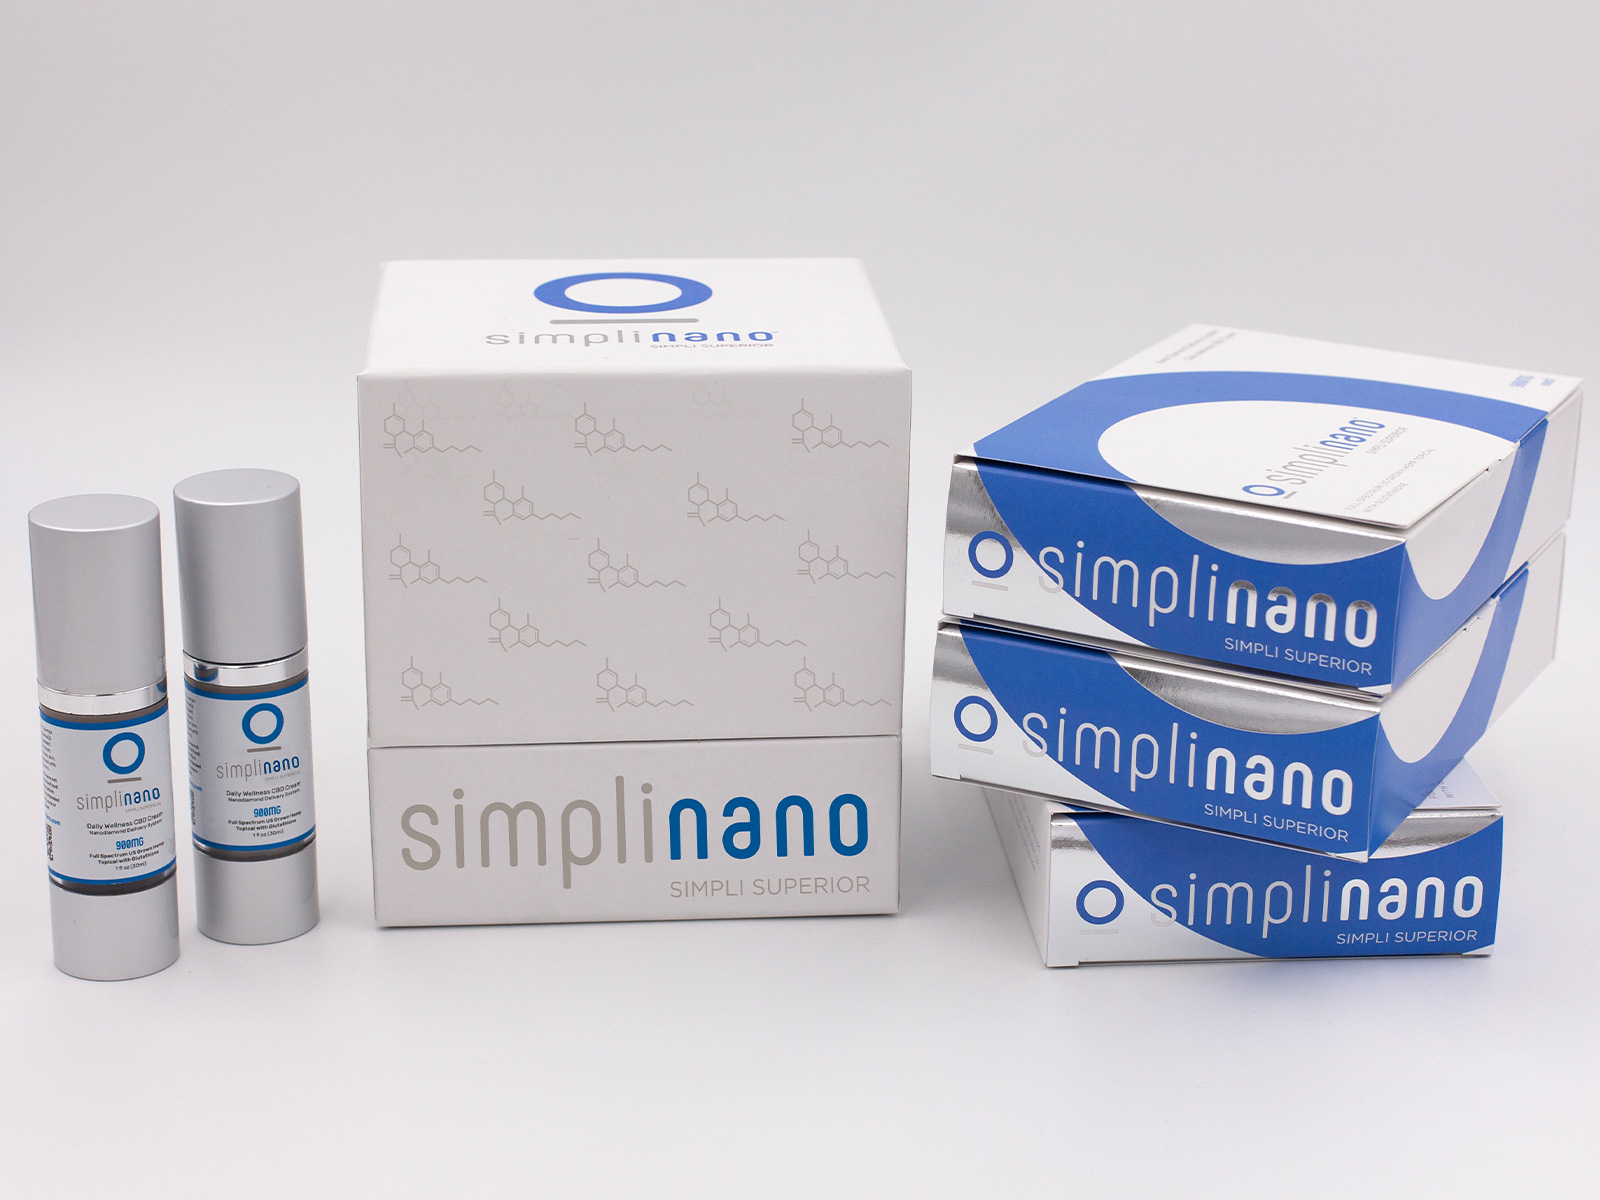 SimpliNano Tiered Packaging and Product Label